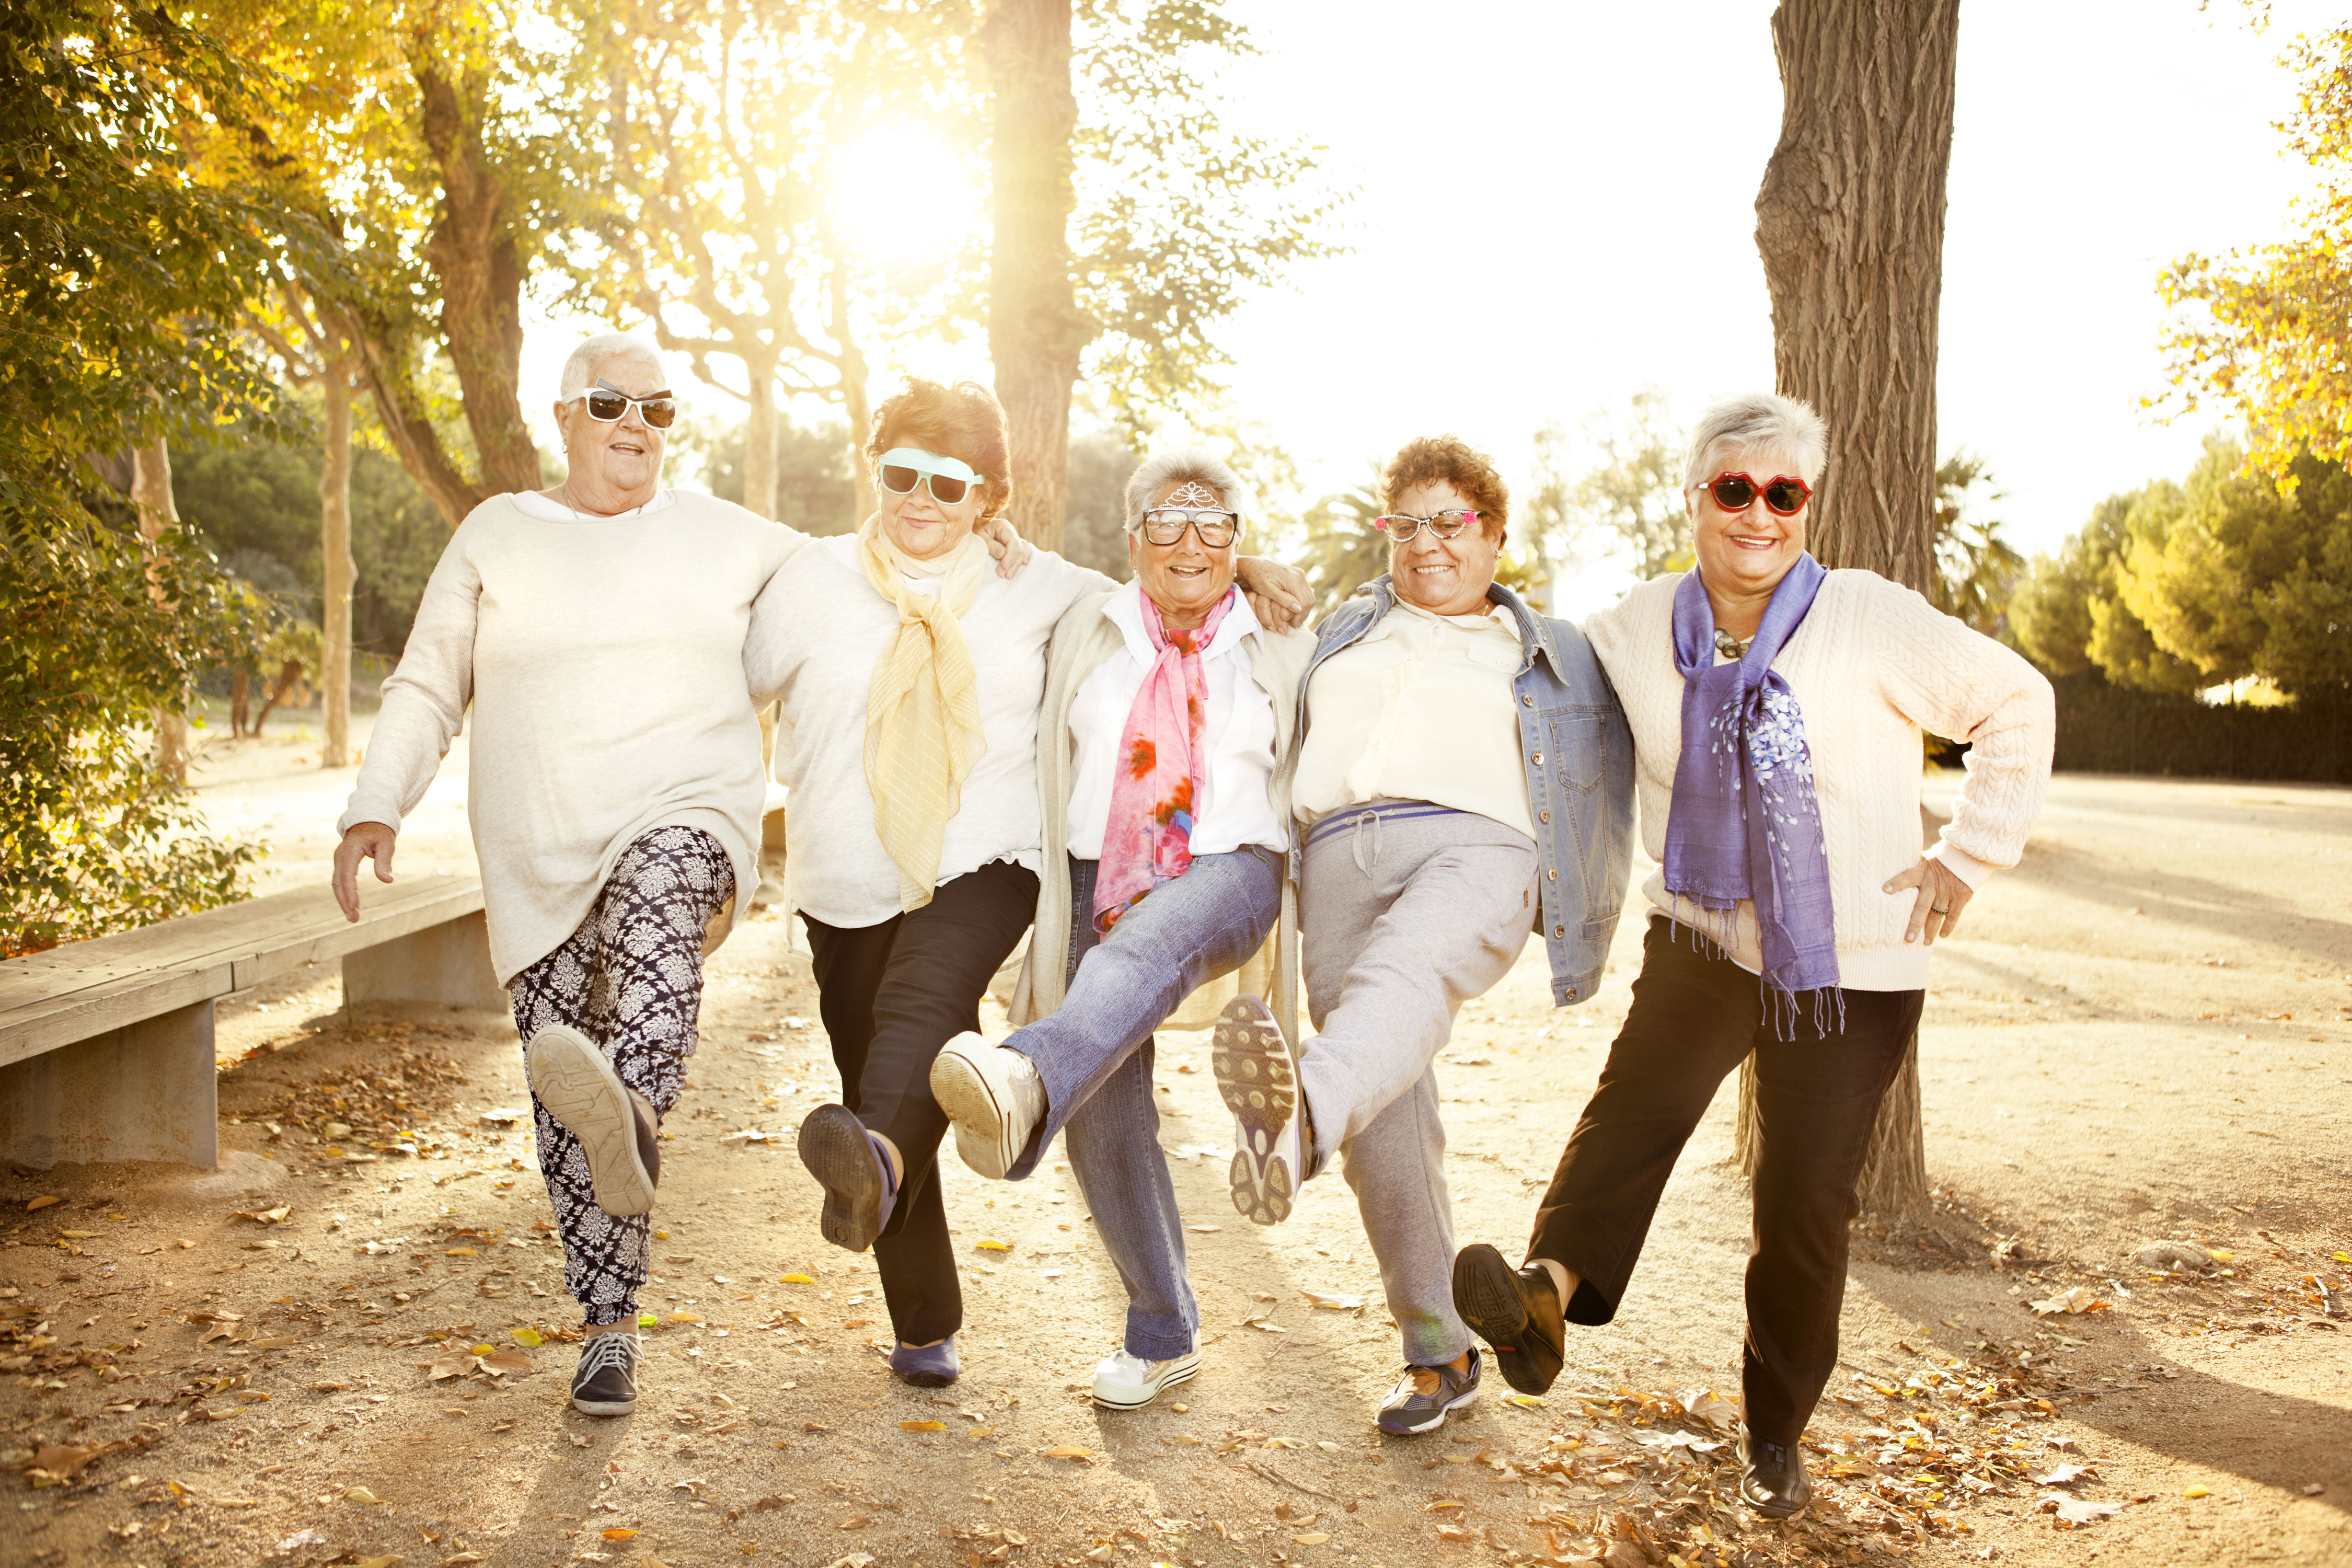 Spending Time with Friends Could Reduce Your Risk of Dementia—Here's Why